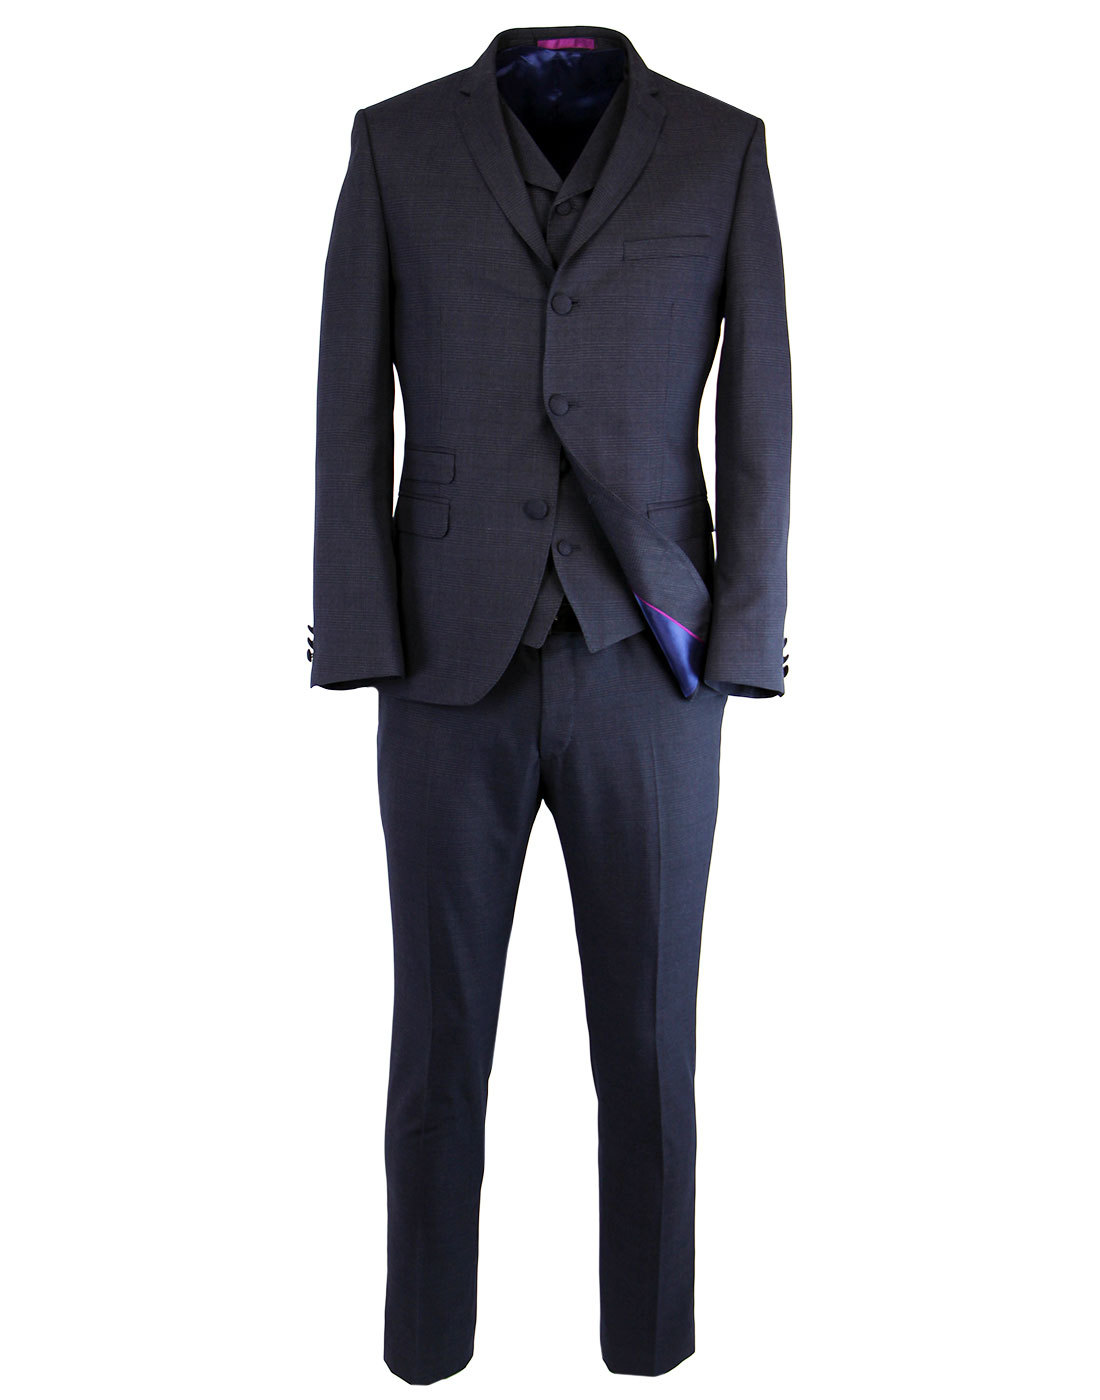 MADCAP ENGLAND Retro Mod 2 or 3 Piece Suit - Blue